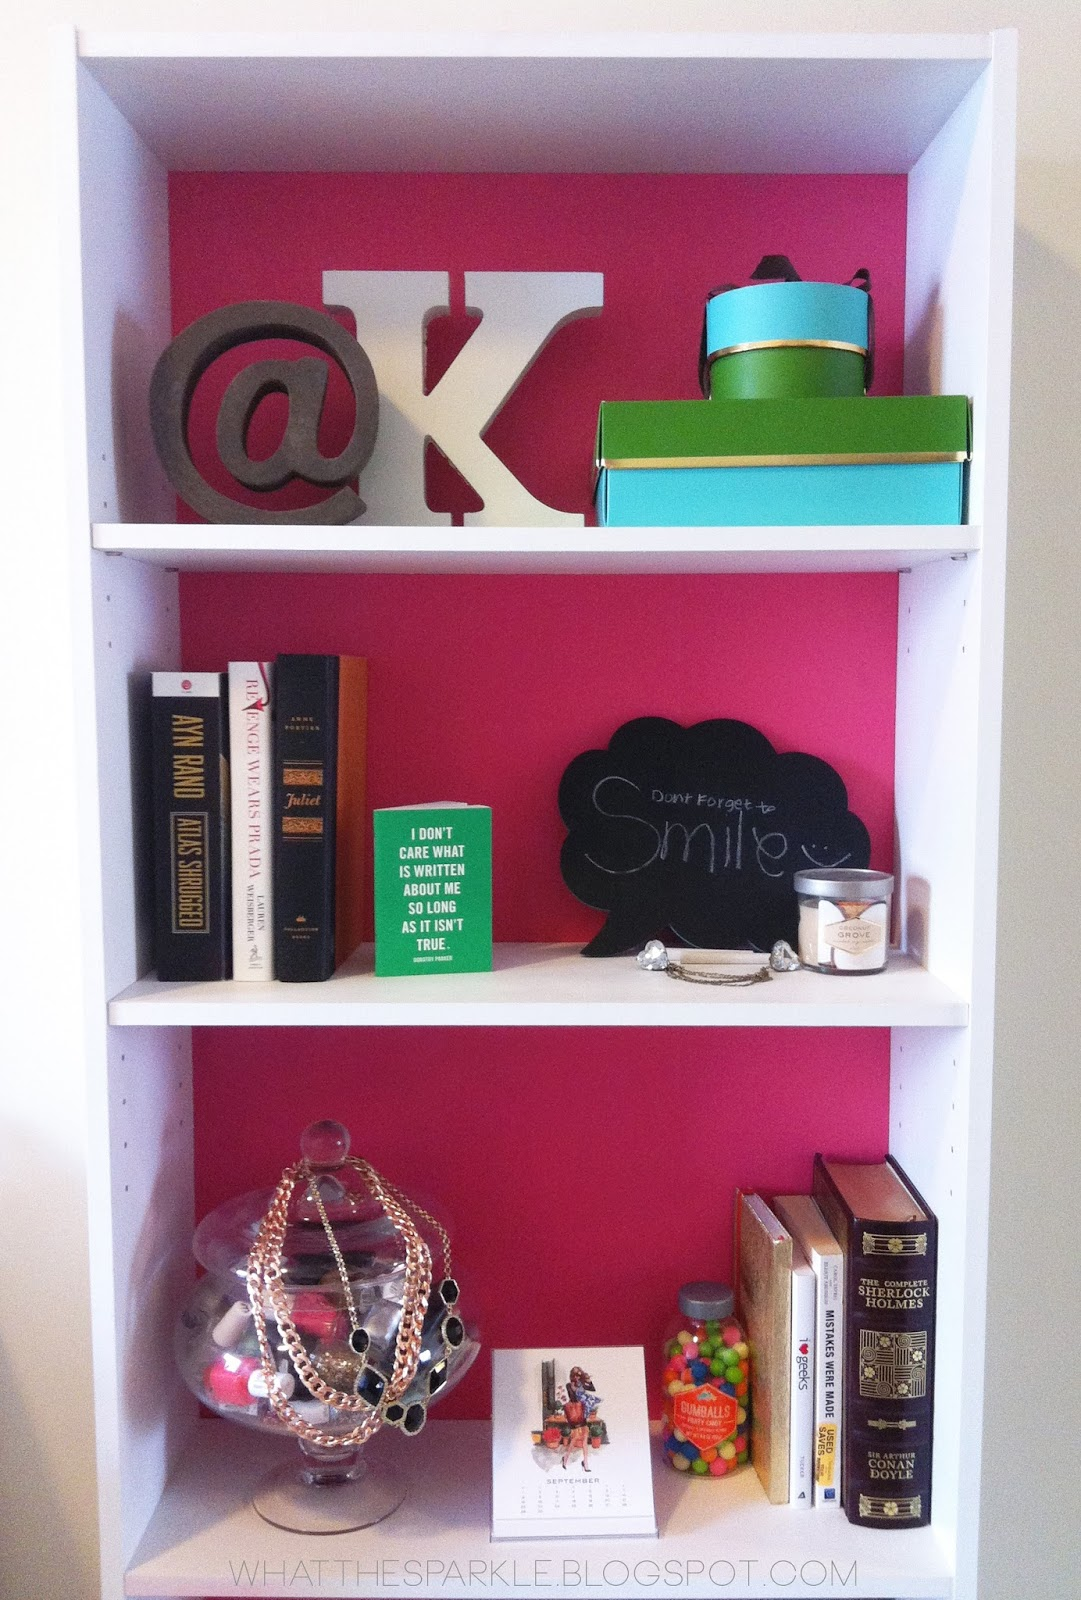 Kelly Moran | Entry Level Adulthood: College-Budget Apartment ...